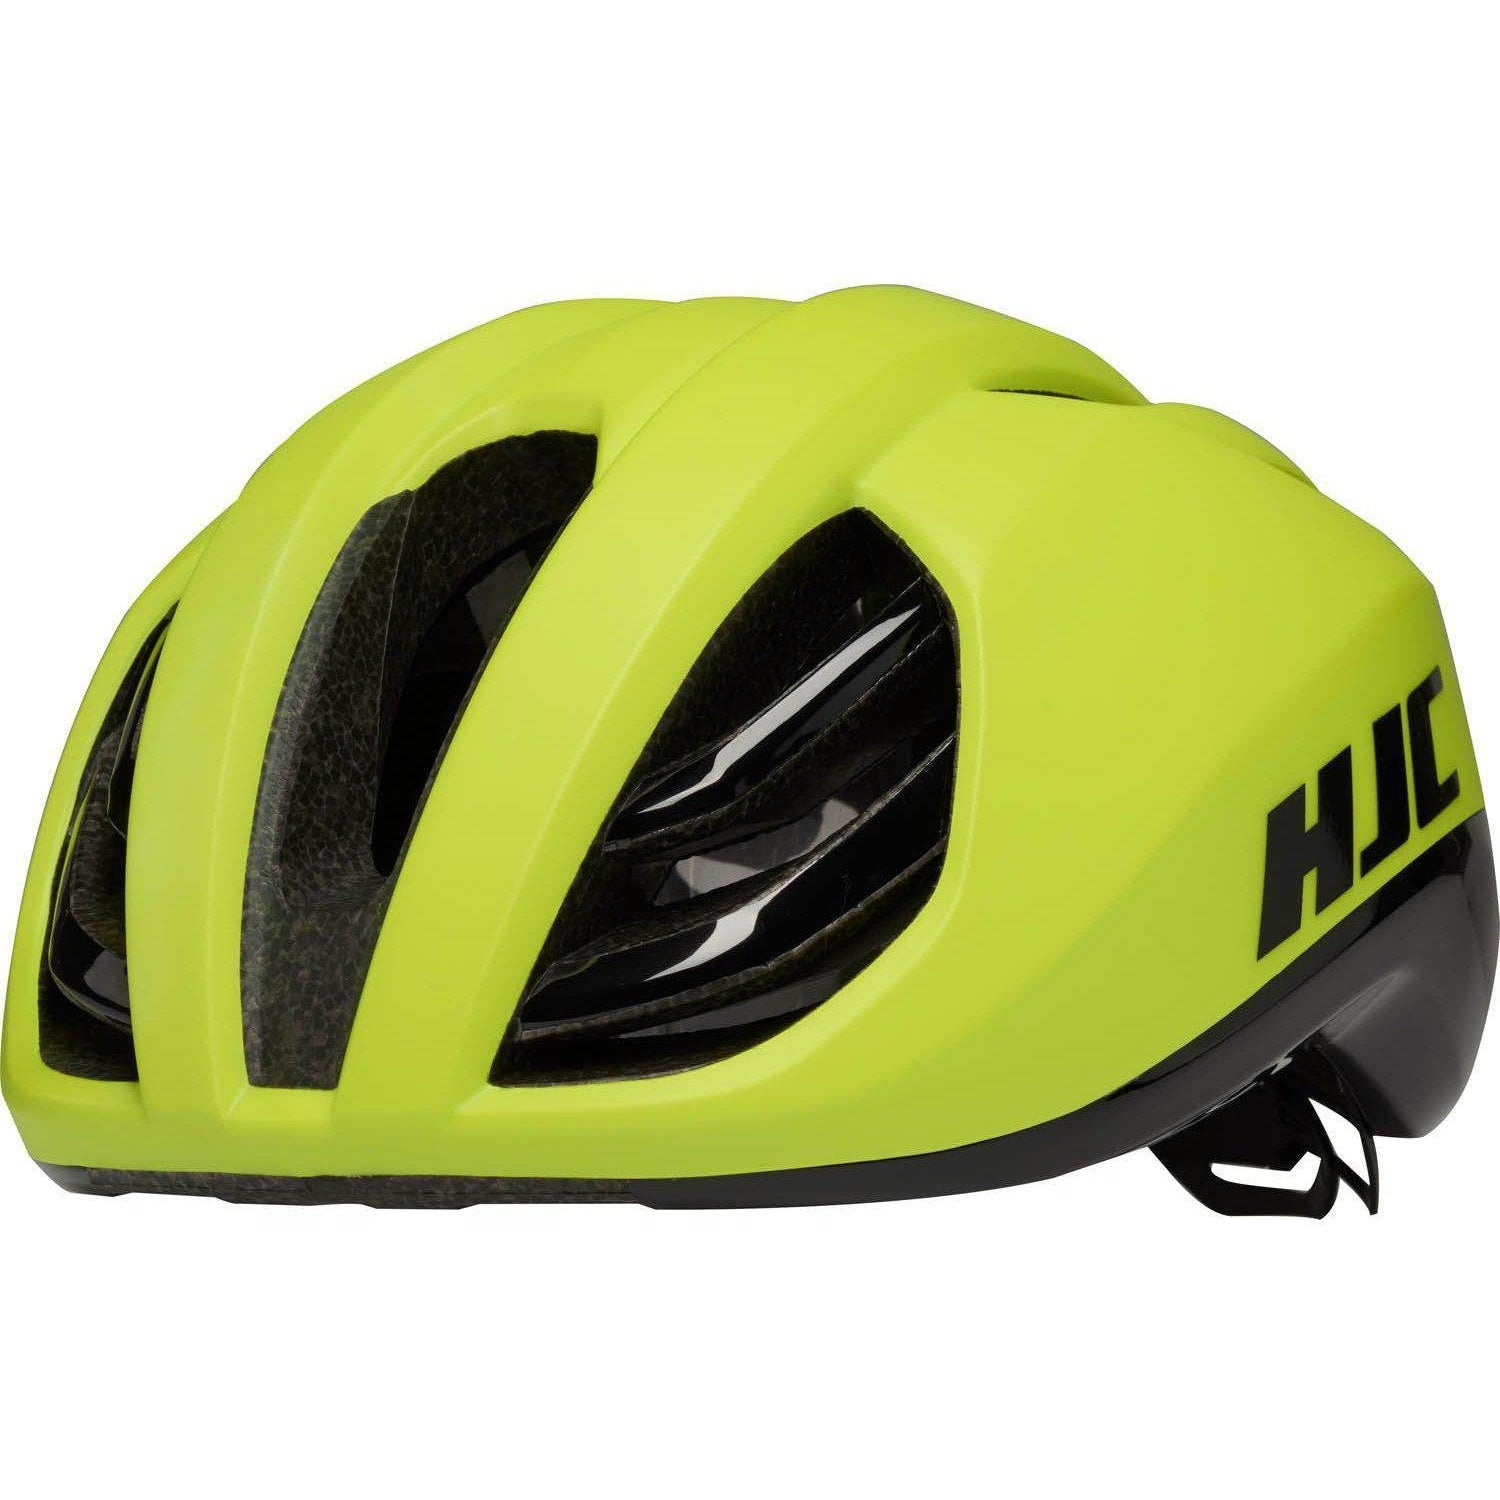 HJC-HJC Atara Road Cycling Helmet-S-Green-HJC81183701-saddleback-elite-performance-cycling